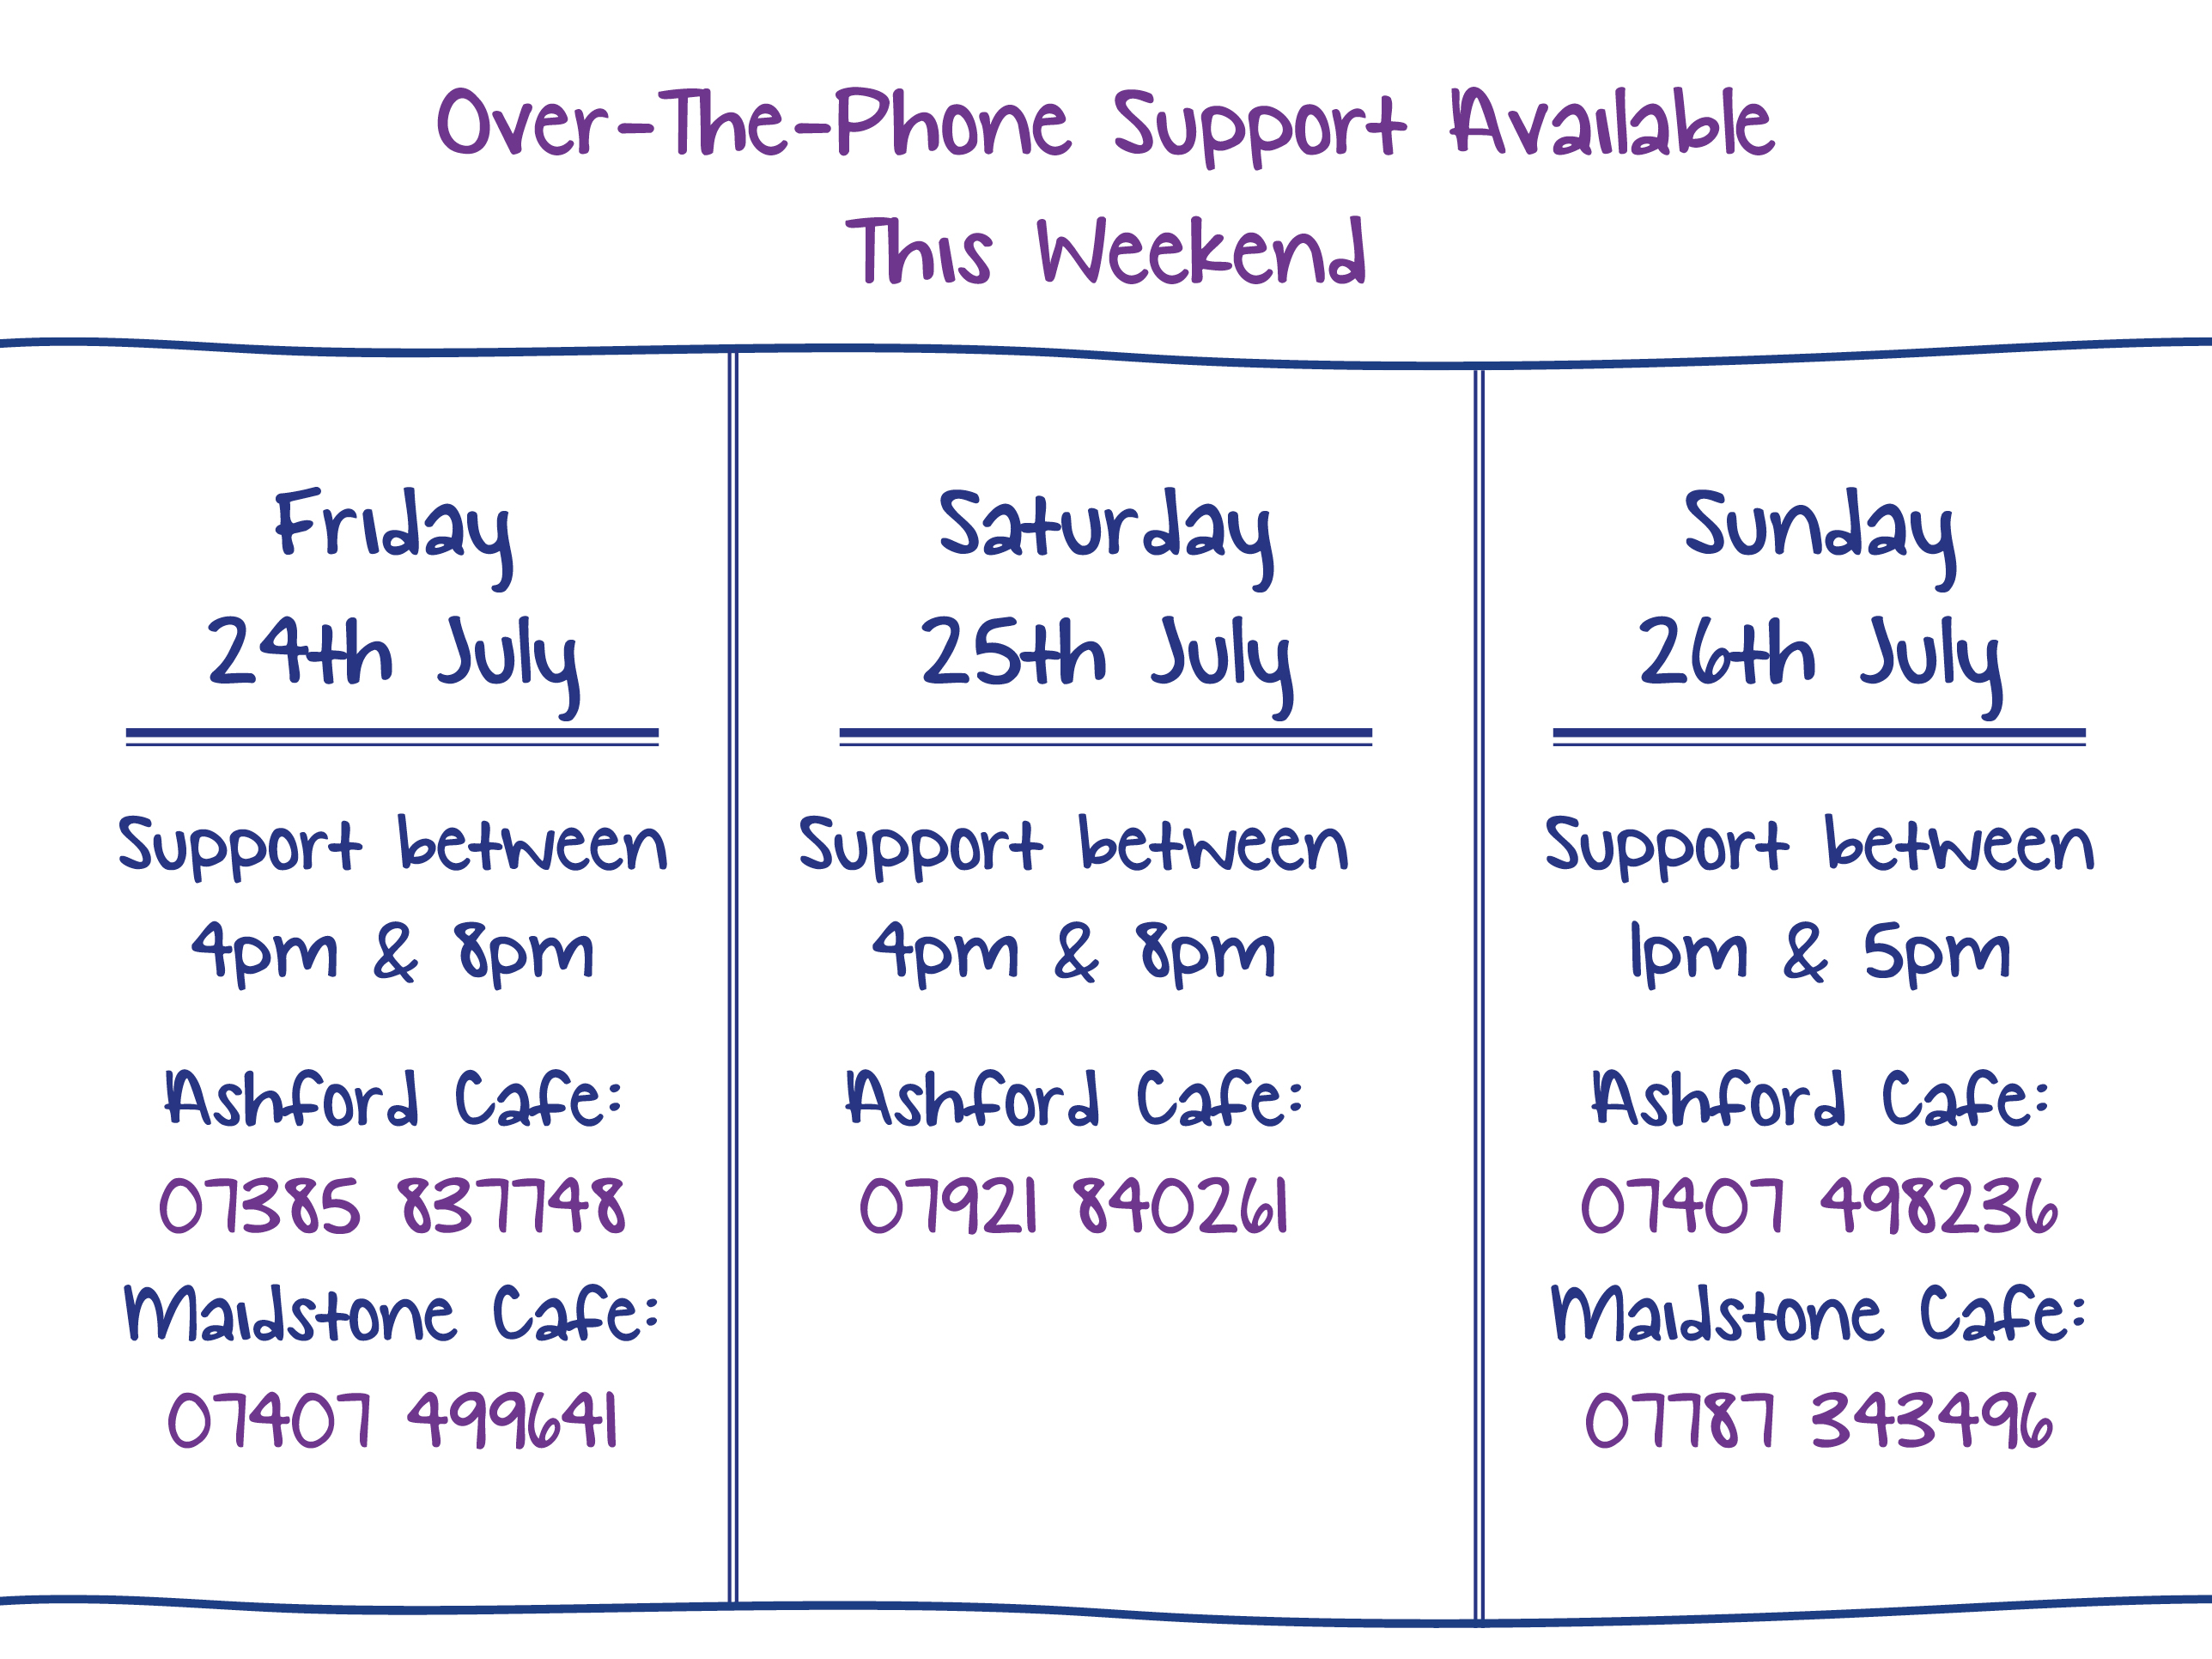 Over-The-Phone Support Available This Weekend. Friday 24th July. Support between 4pm & 8pm Ashford Cafe: 07385 837748 Maidstone Cafe: 07407 499641. Saturday 25th July. Support between 4pm & 8pm Ashford Cafe: 07921 840261. Sunday 26th July. Support between 1pm & 5pm Ashford Cafe: 07407 498236 Maidstone Cafe: 07787 343496